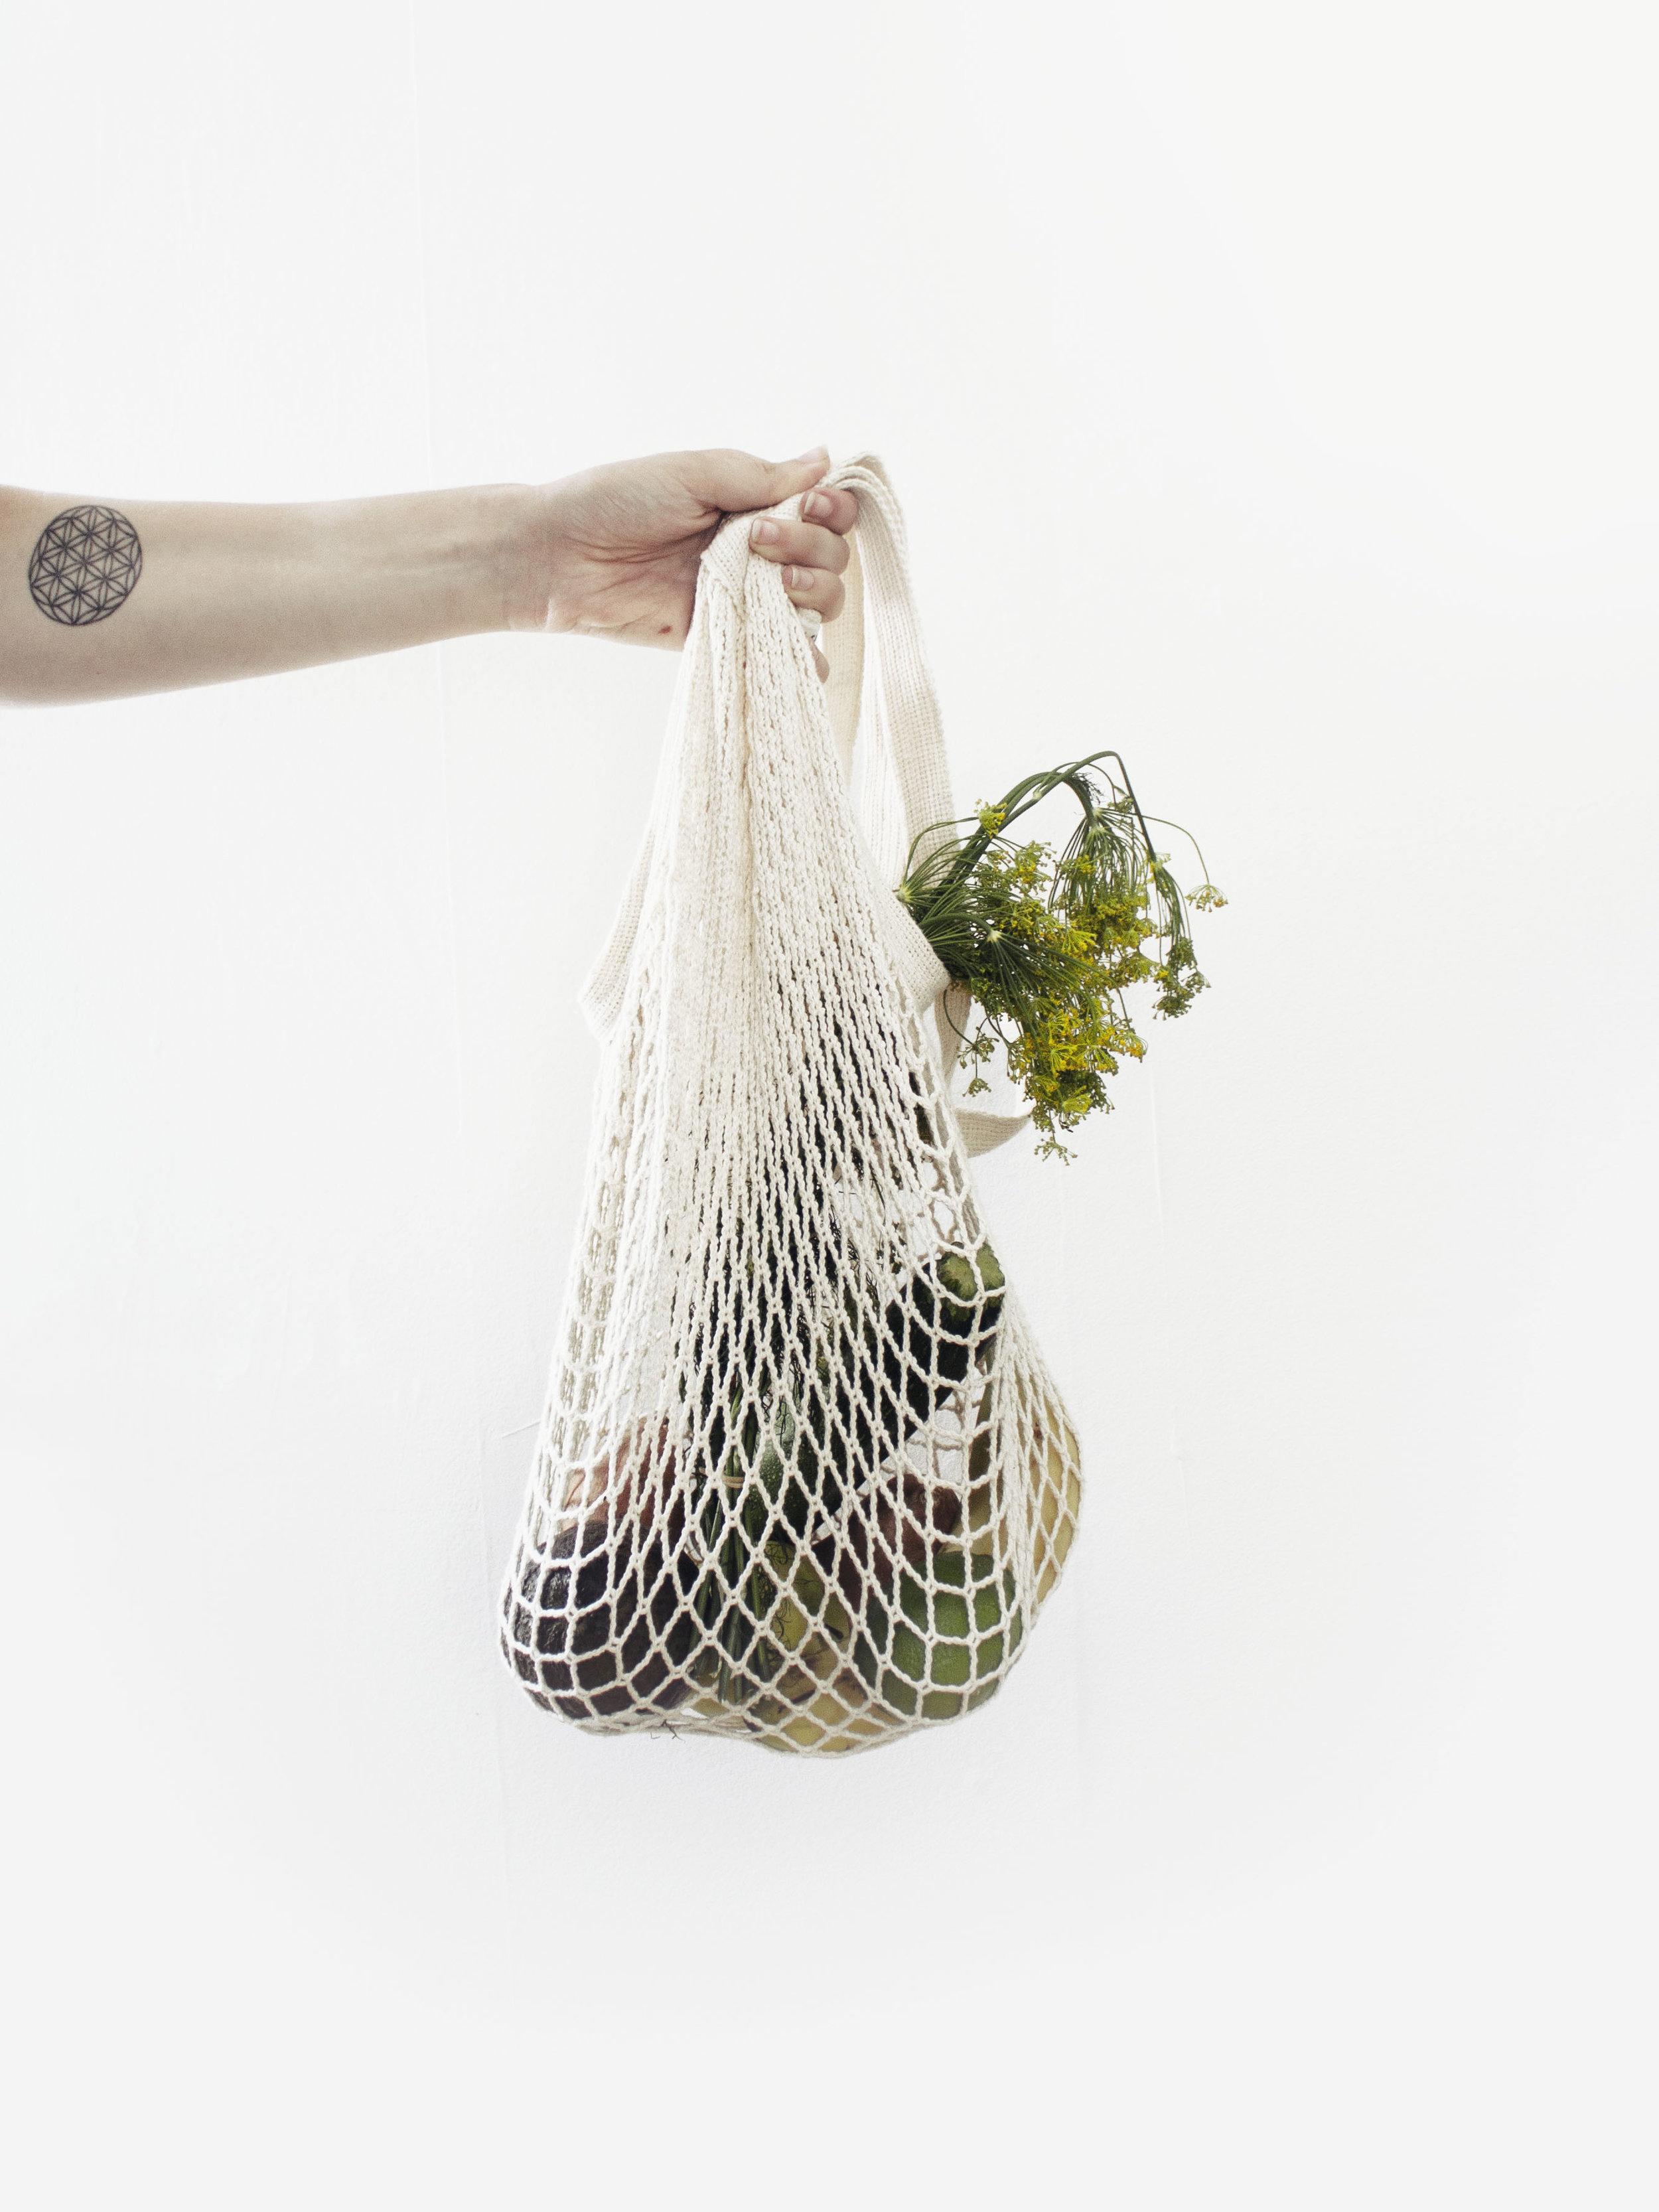 how to reduce plastic waste